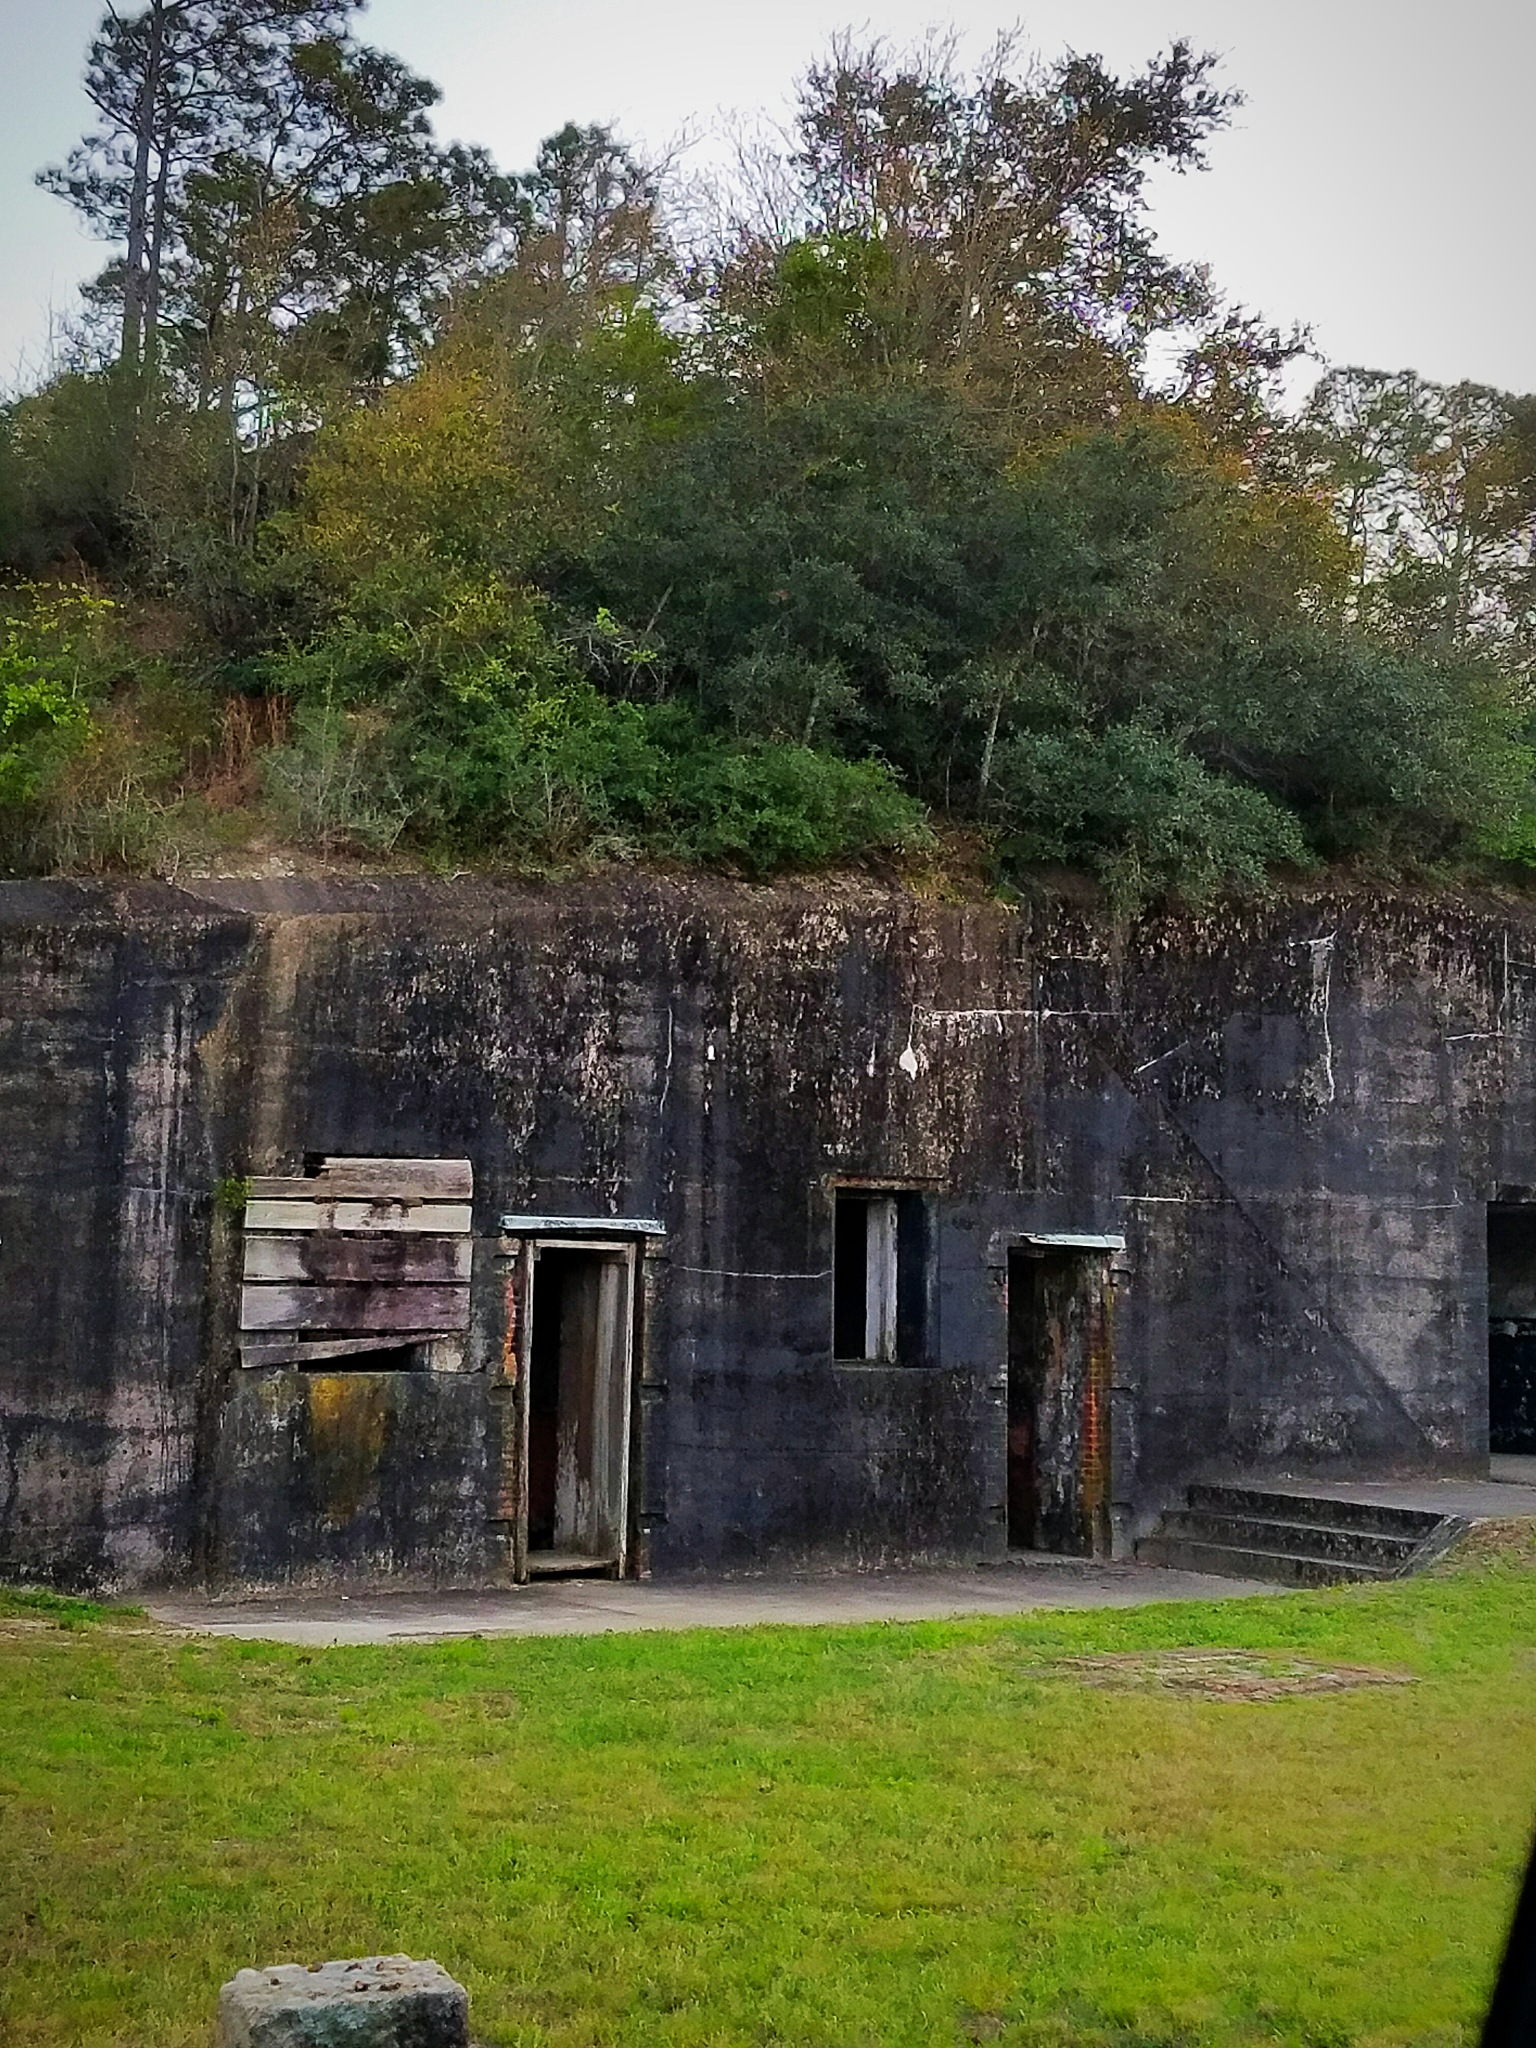 a bit of history from Fort Morgan by kathy.peace.3